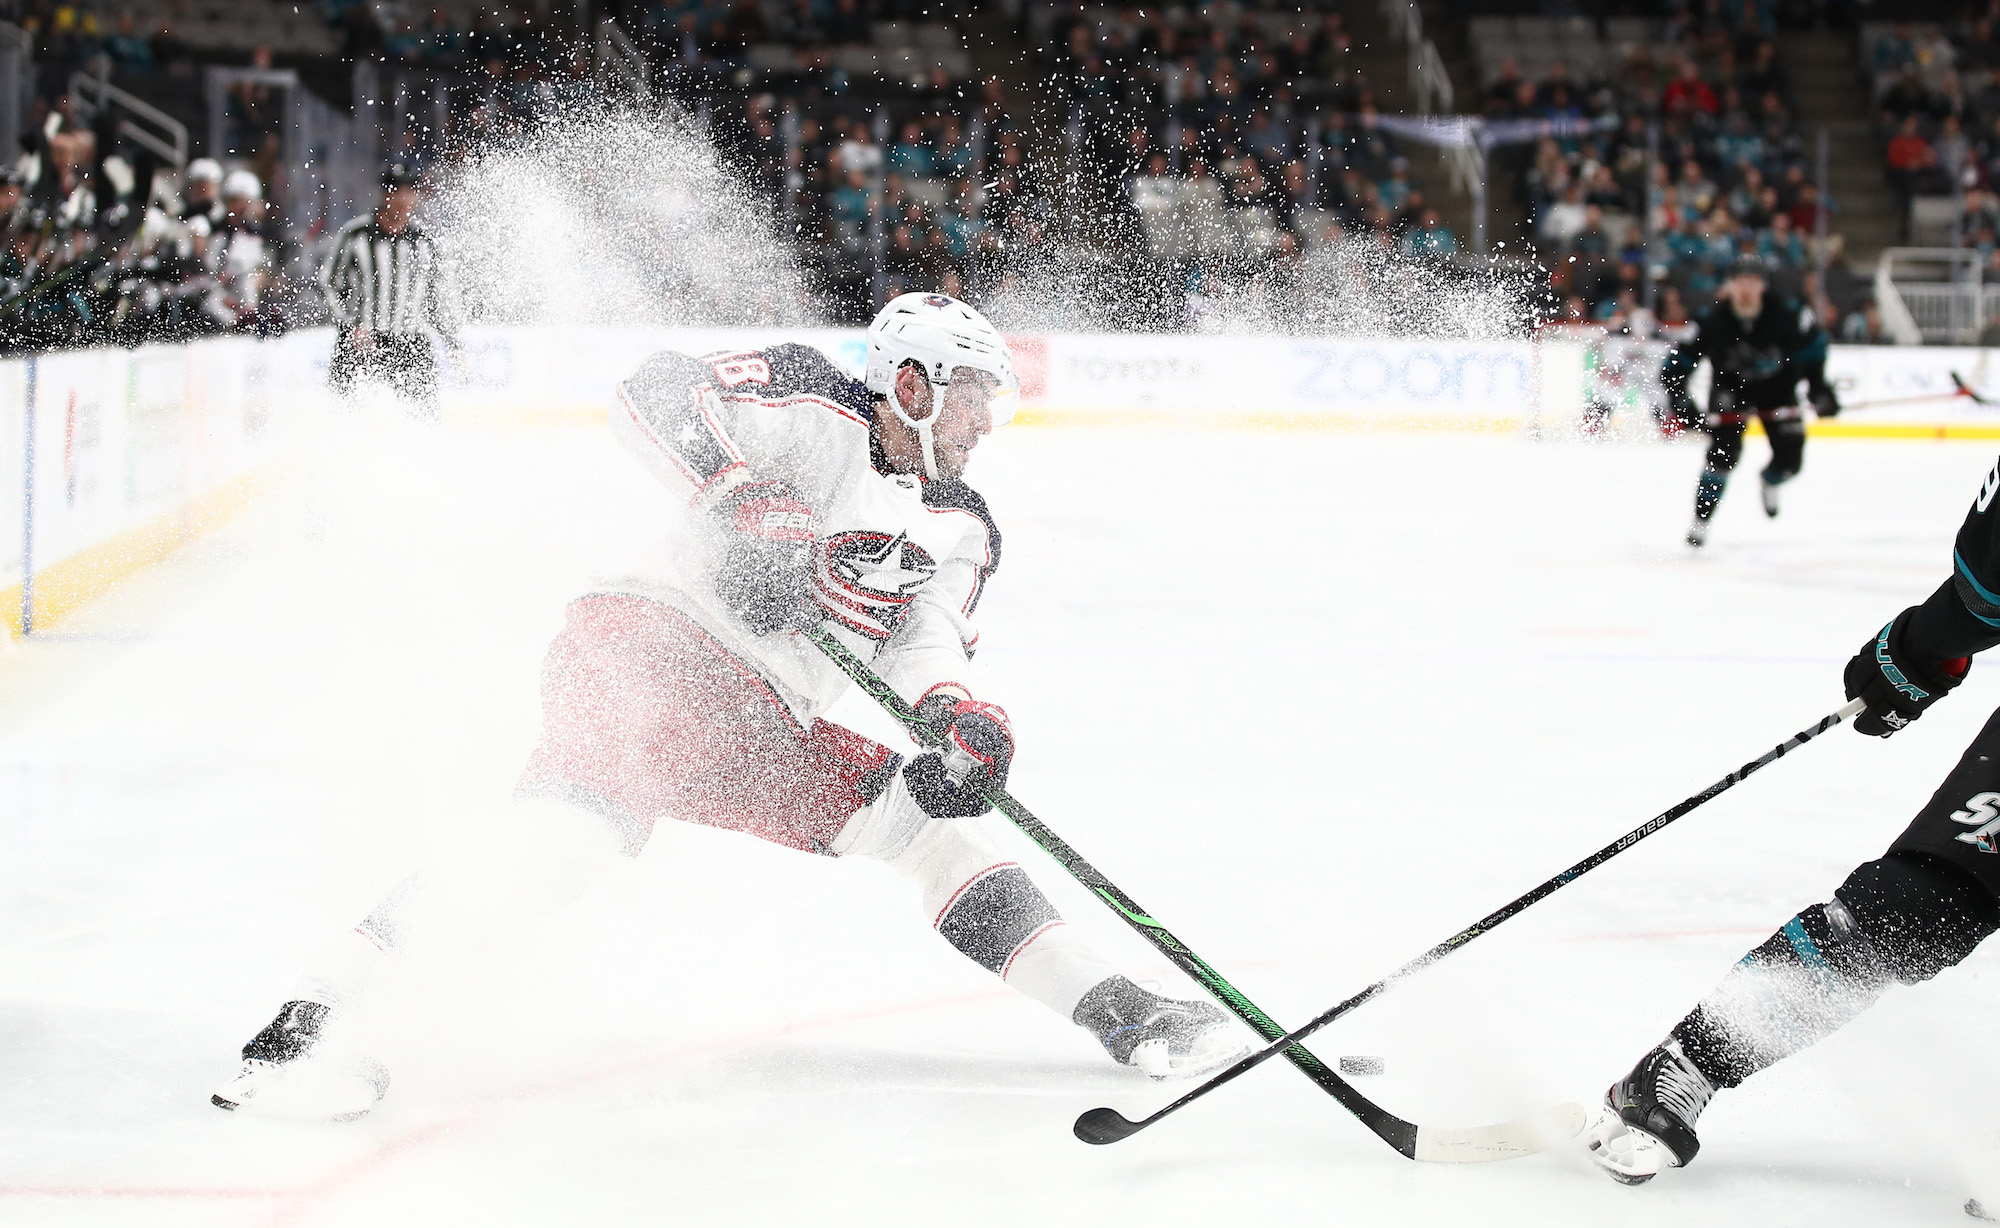 SAN JOSE, CALIFORNIA - JANUARY 09: Pierre-Luc Dubois #18 of the Columbus Blue Jackets stops on the ice during their game against the San Jose Sharks at SAP Center on January 09, 2020 in San Jose, California. (Photo by Ezra Shaw/Getty Images)